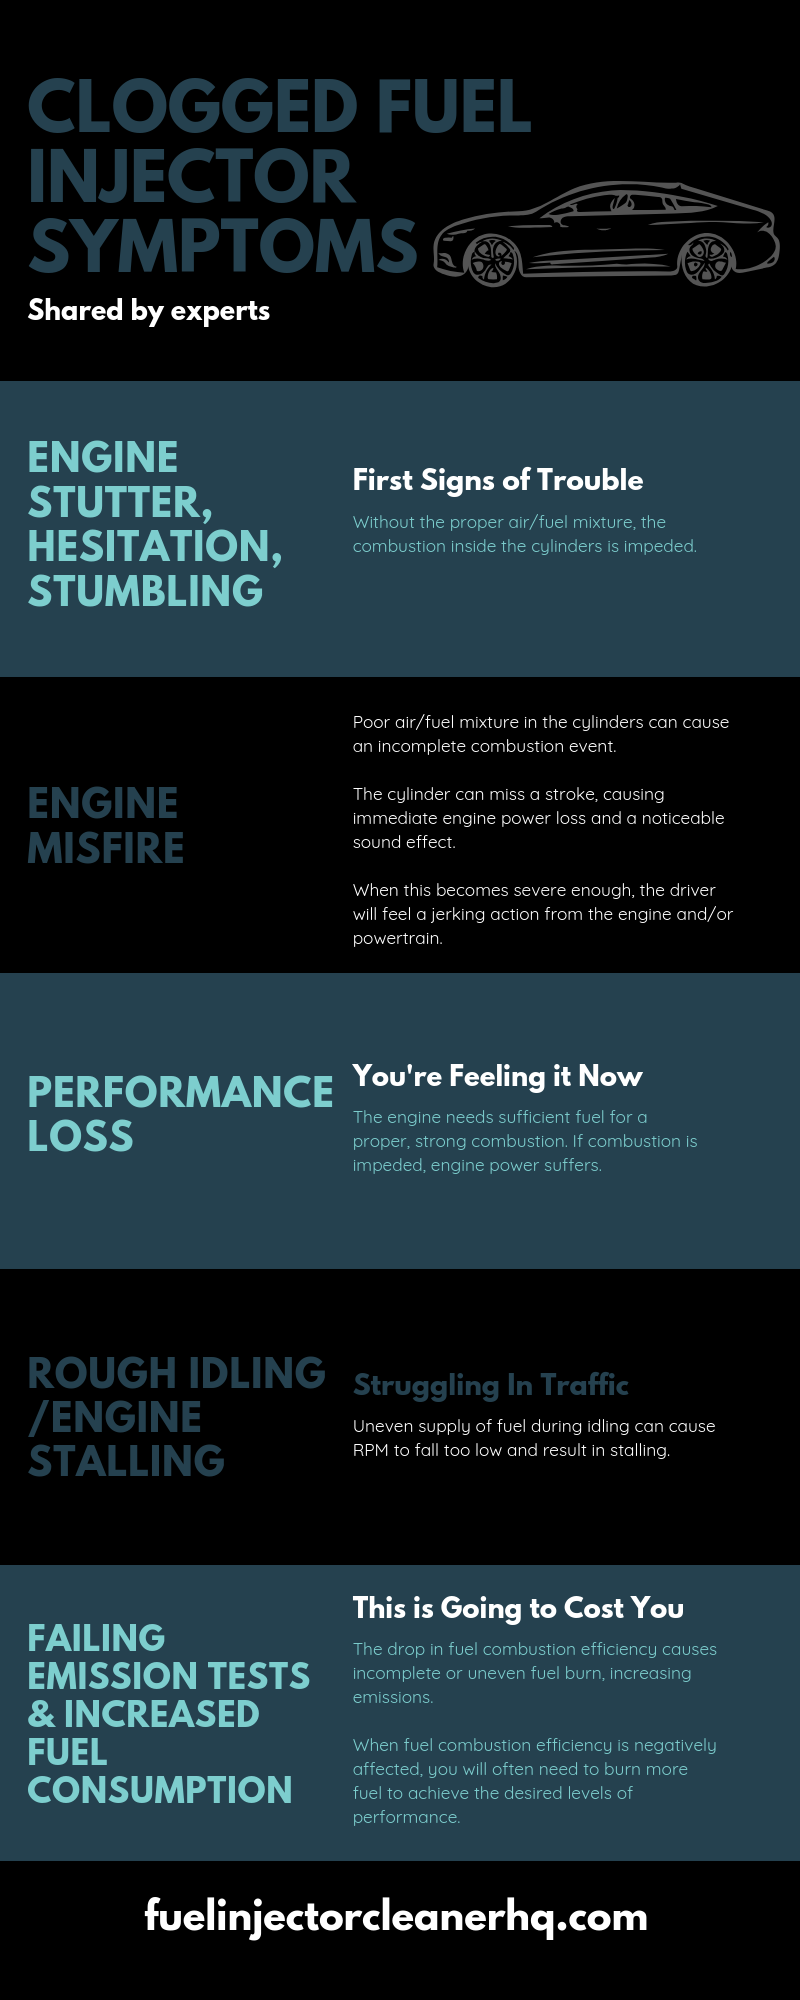 Clogged Fuel Injector Symptoms - an infographic